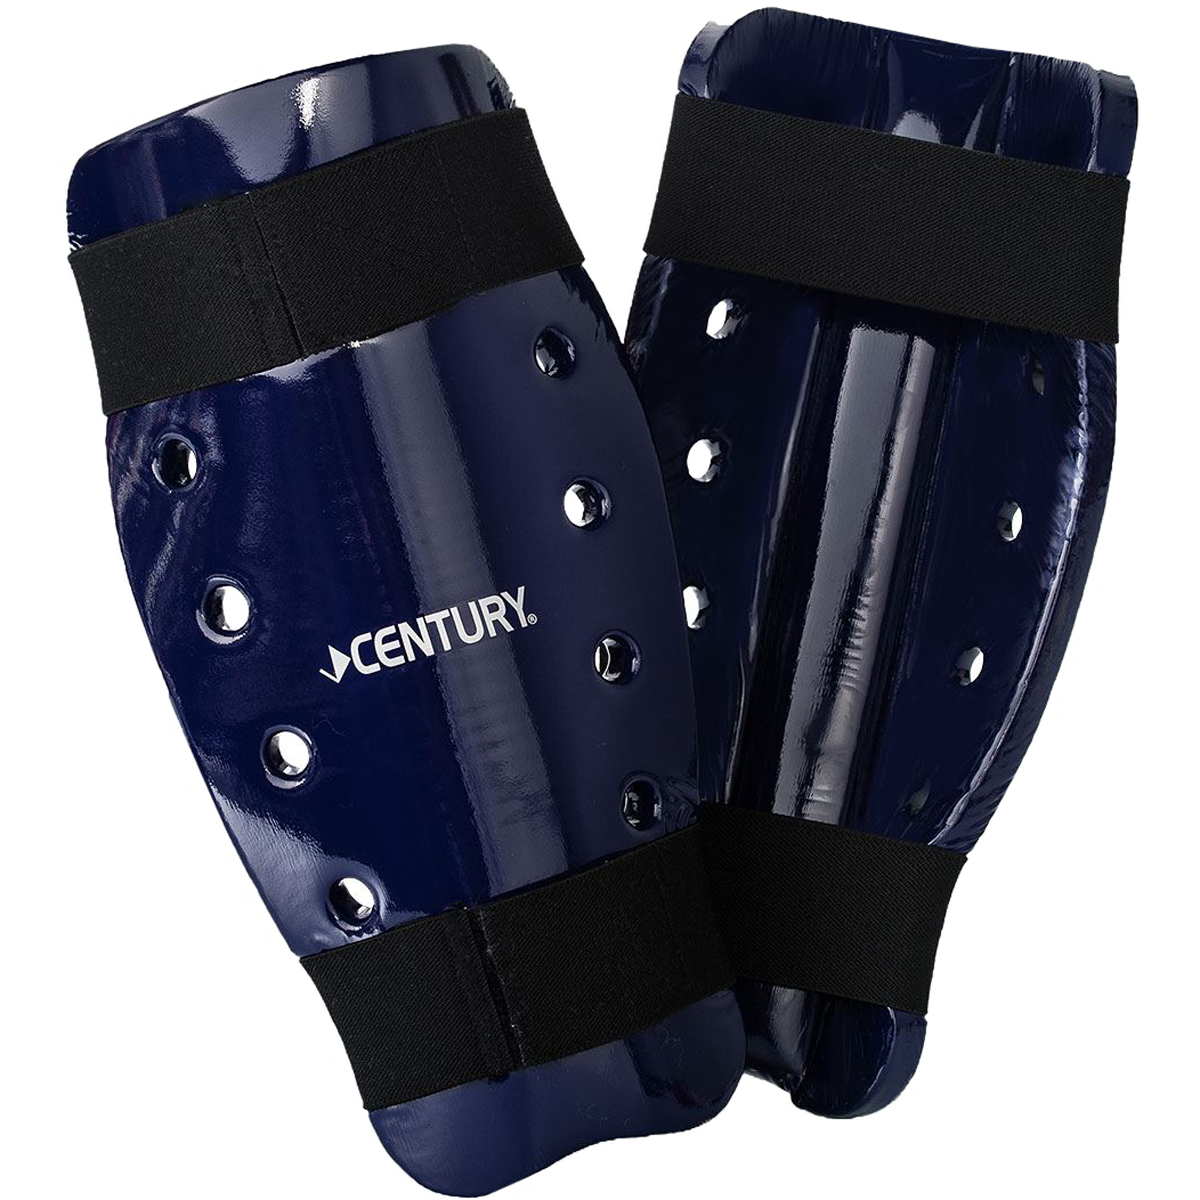 Century Sparring Shin Guards Karate Taekwondo Martial Arts c11773